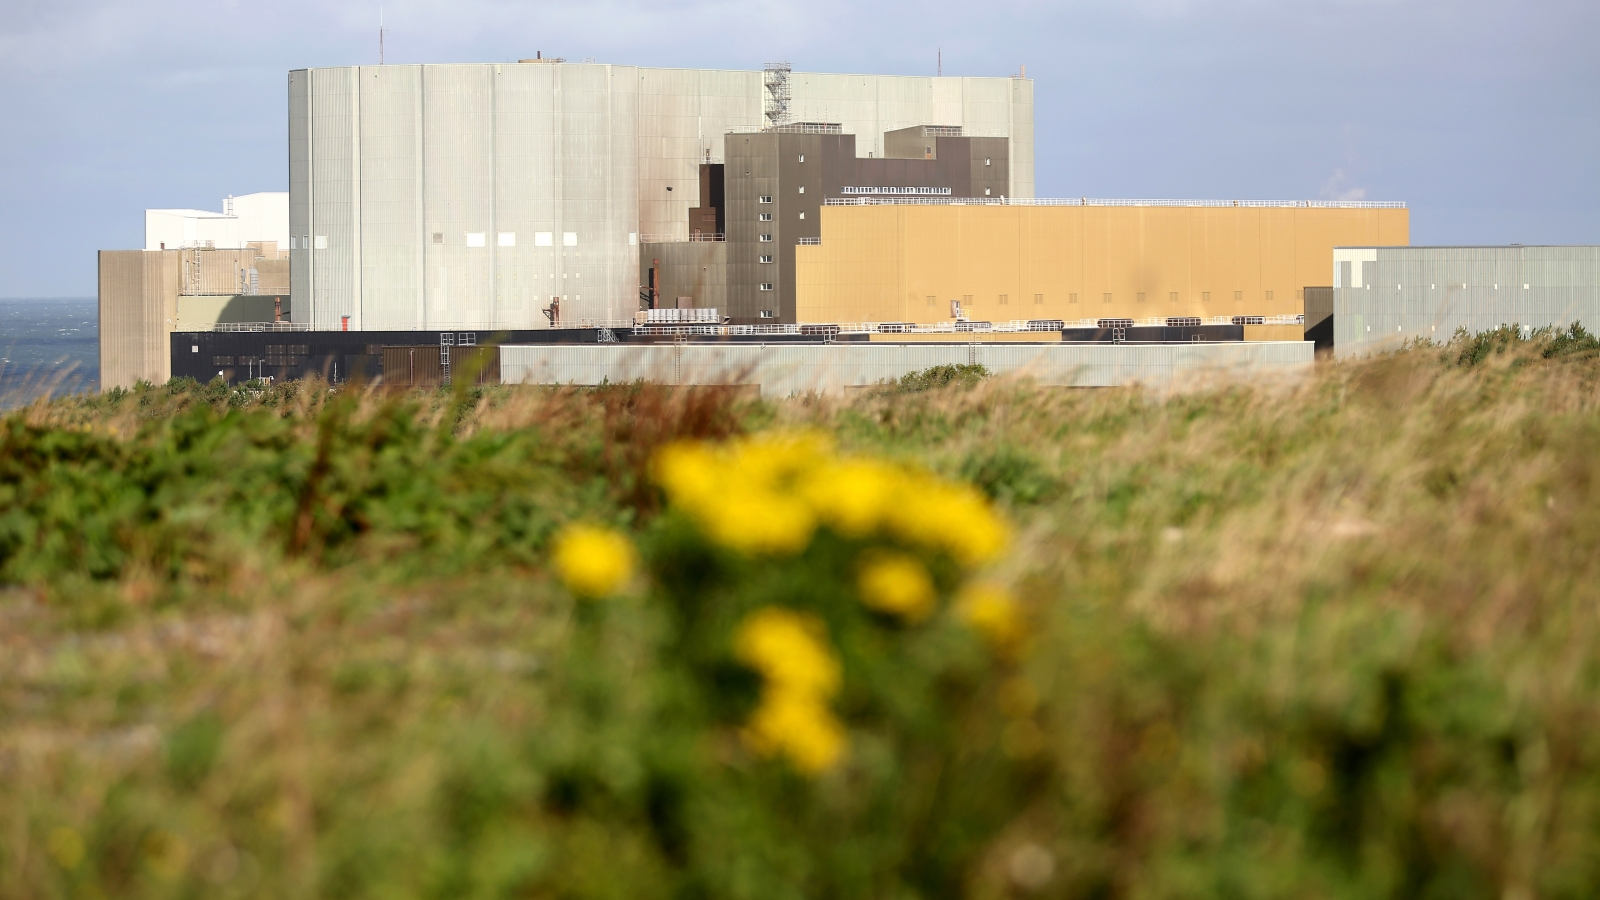 Hinkley Point C nuclear power station